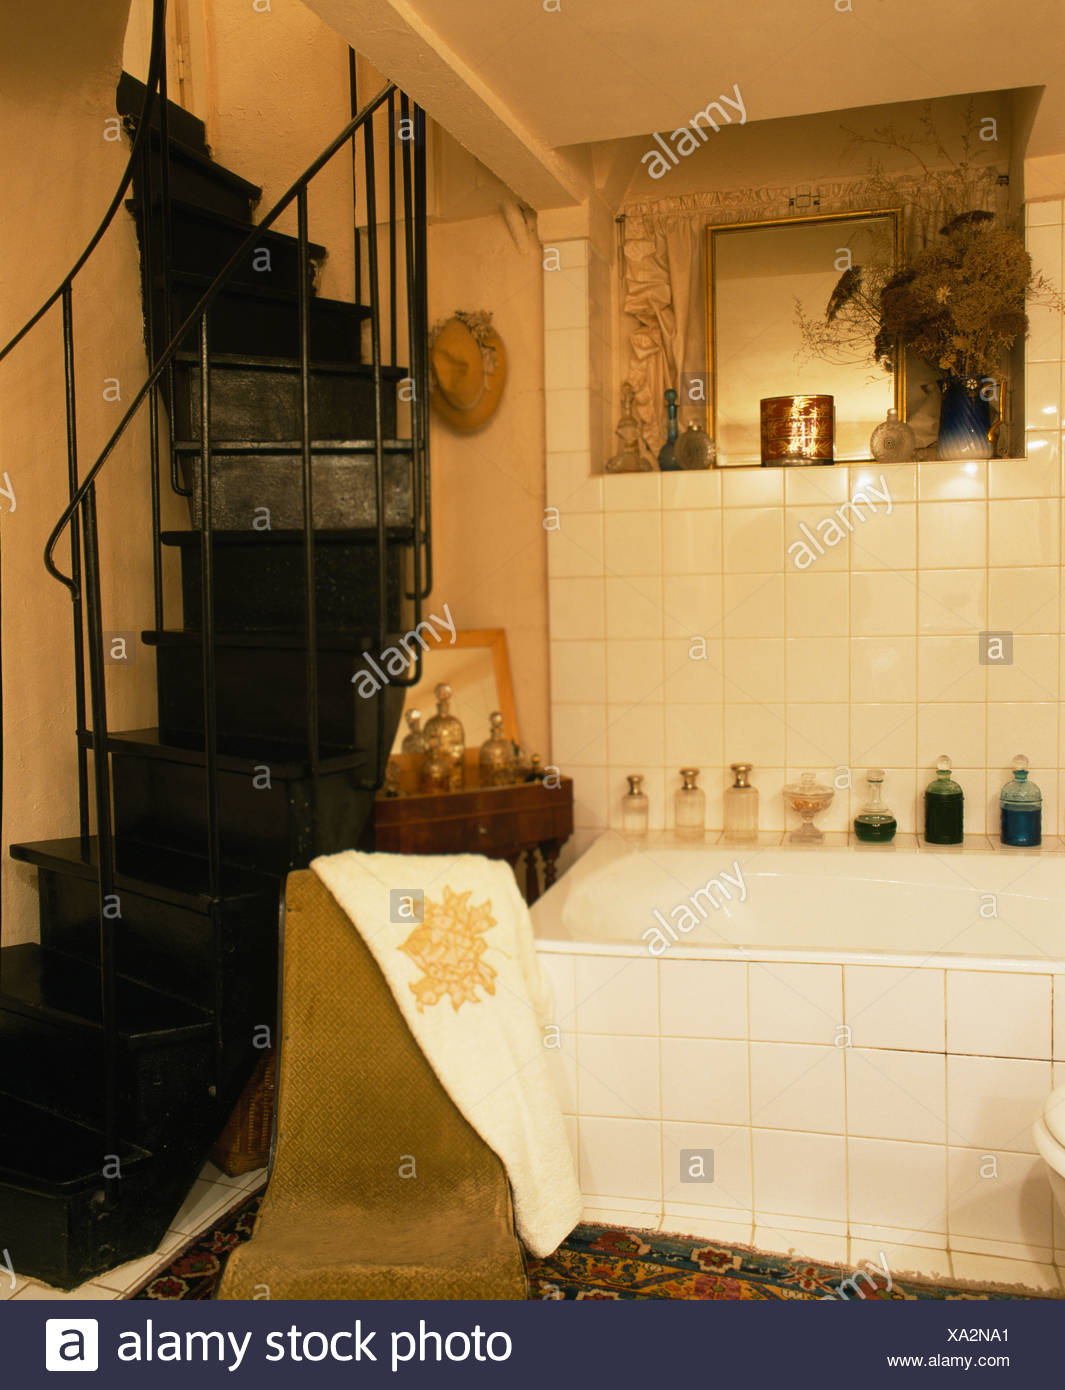 Black spiral staircase in French country bathroom with white tiled ...